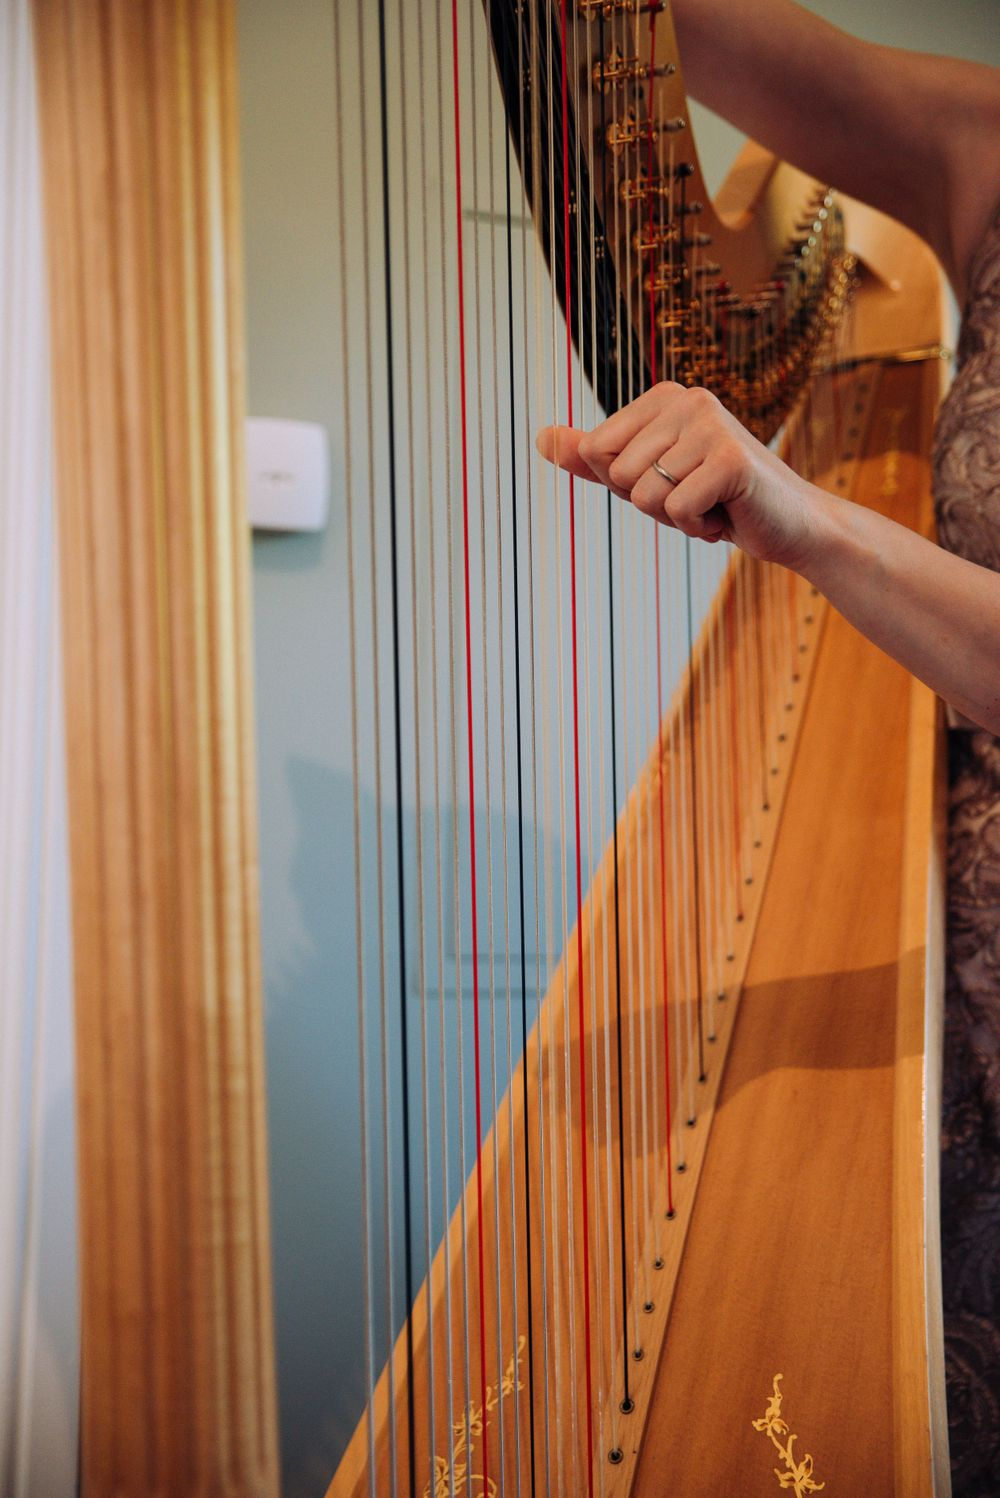 Zara Davis Wedding Photography near Stroud, Gloucestershire in the Cotswolds Ellenborough Park harpist playing